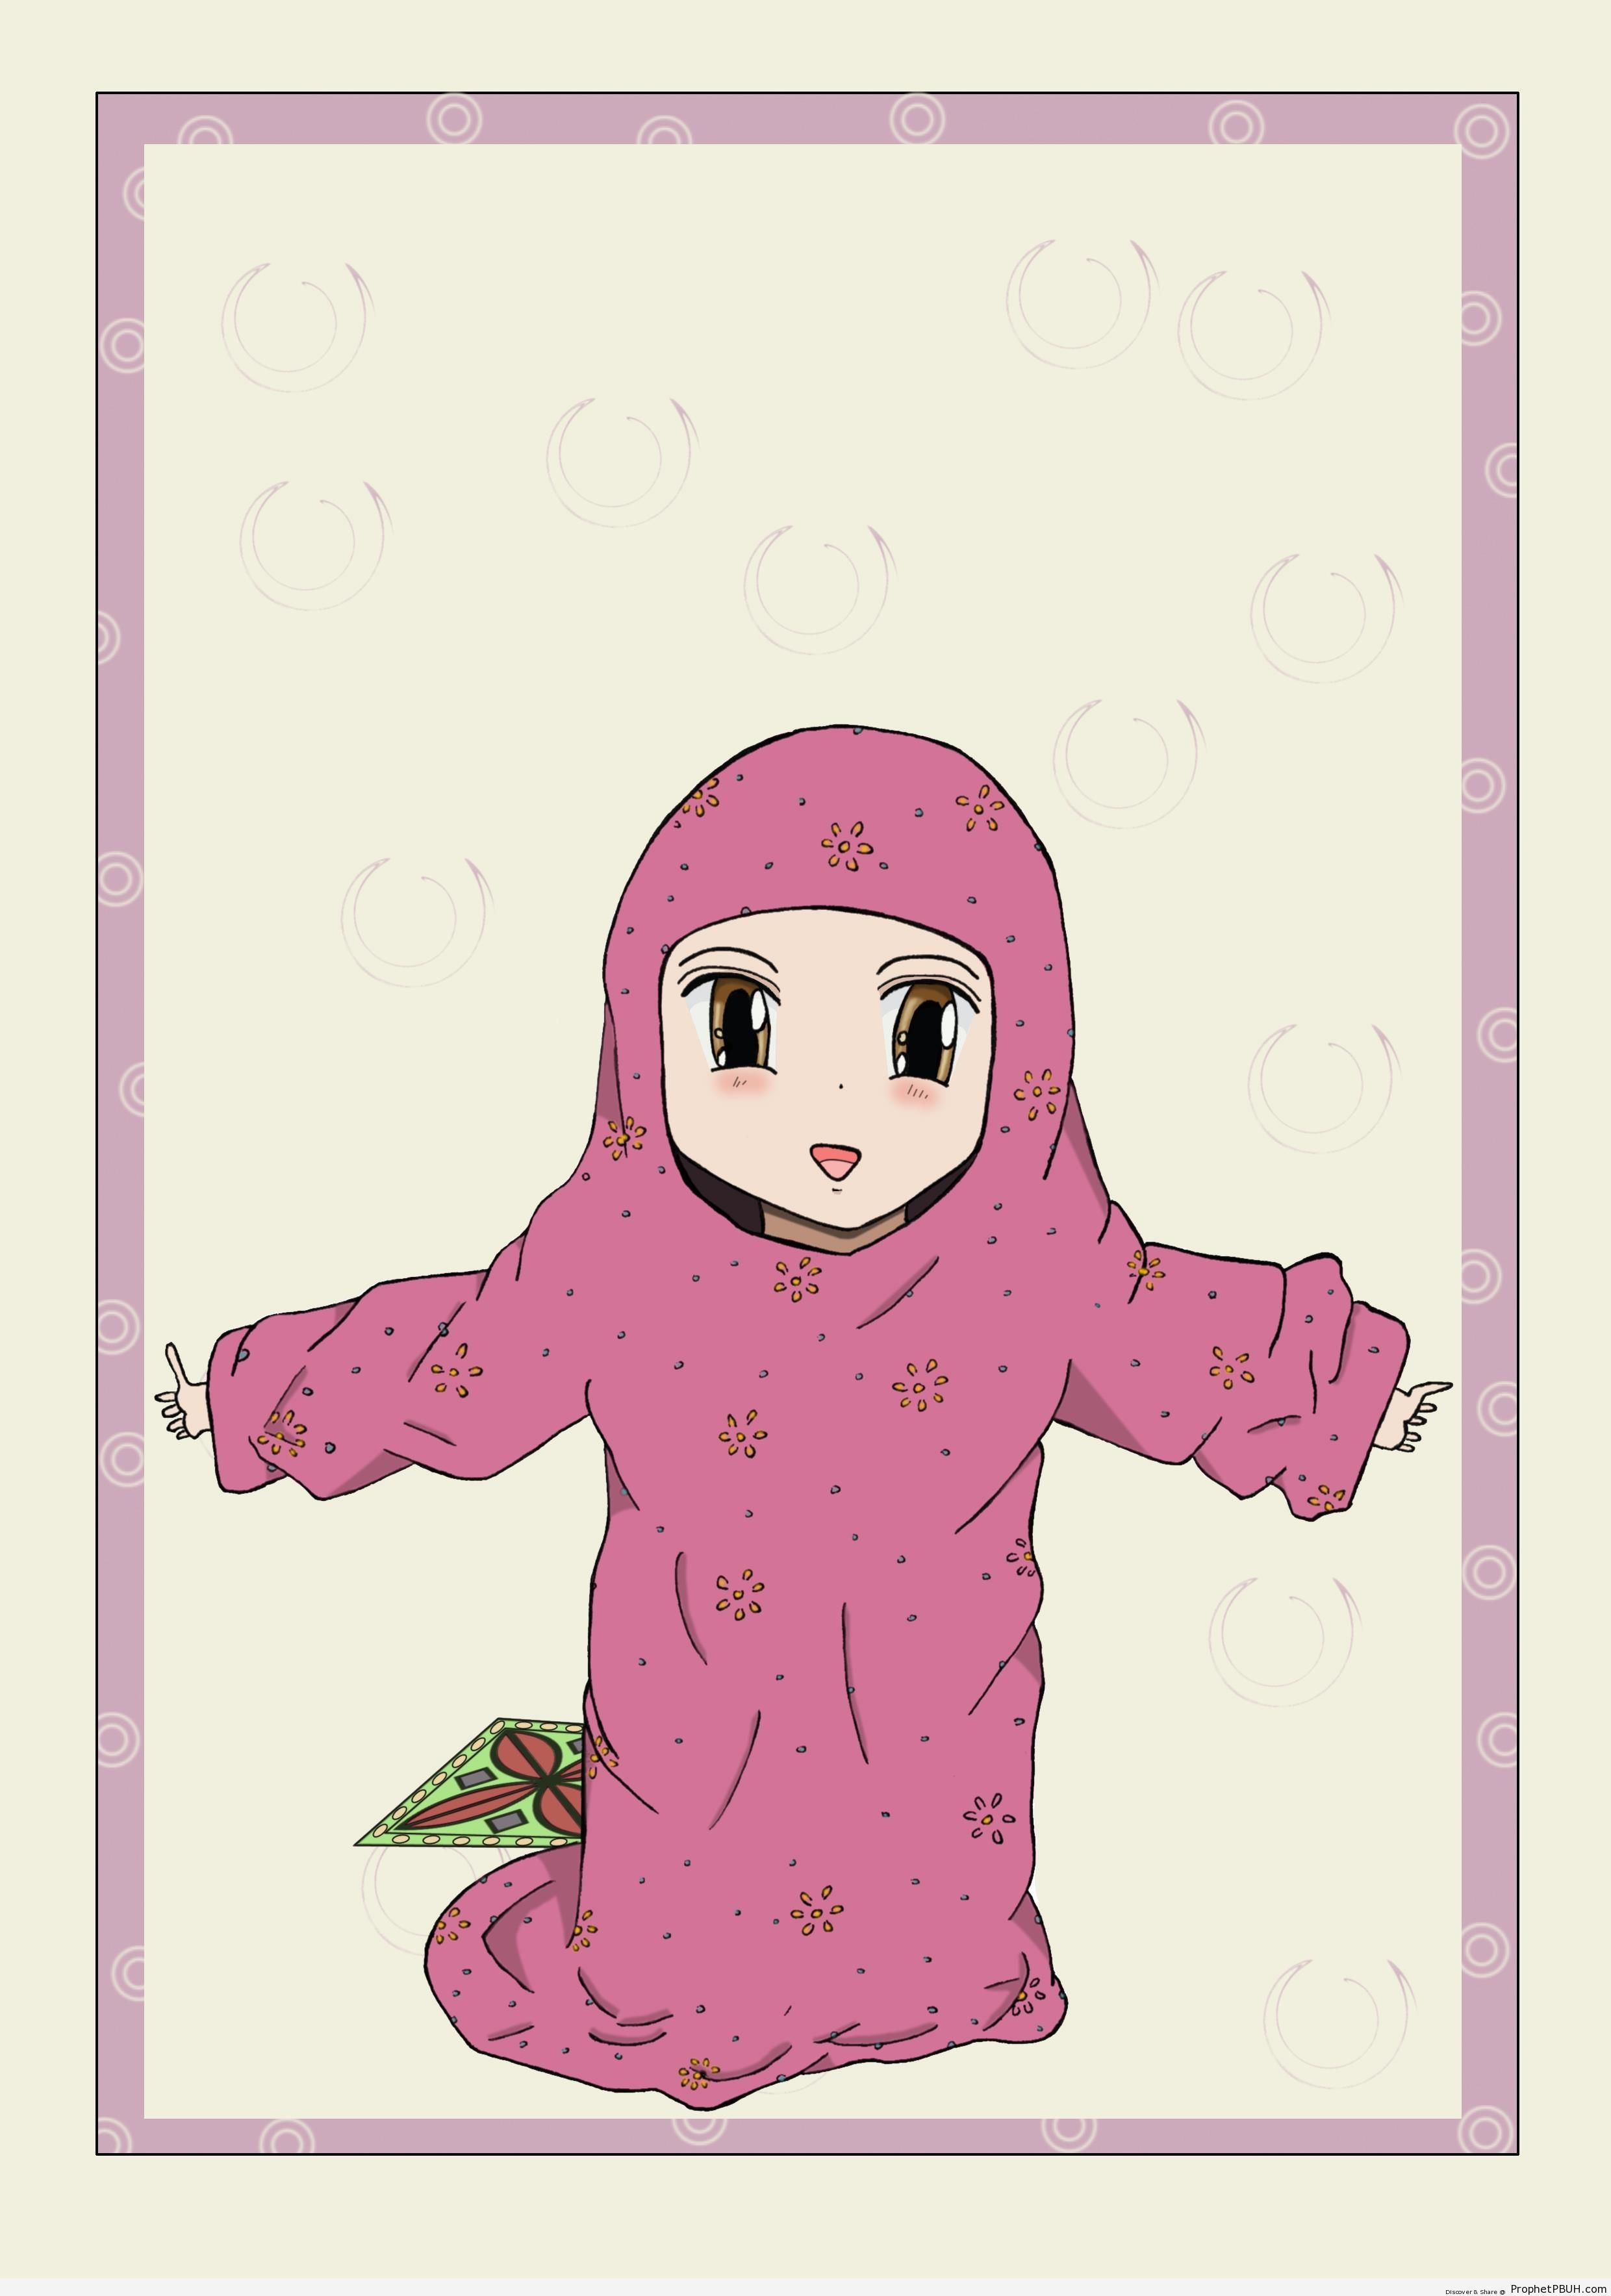 Little Girl in Too Large Hijab - Drawings